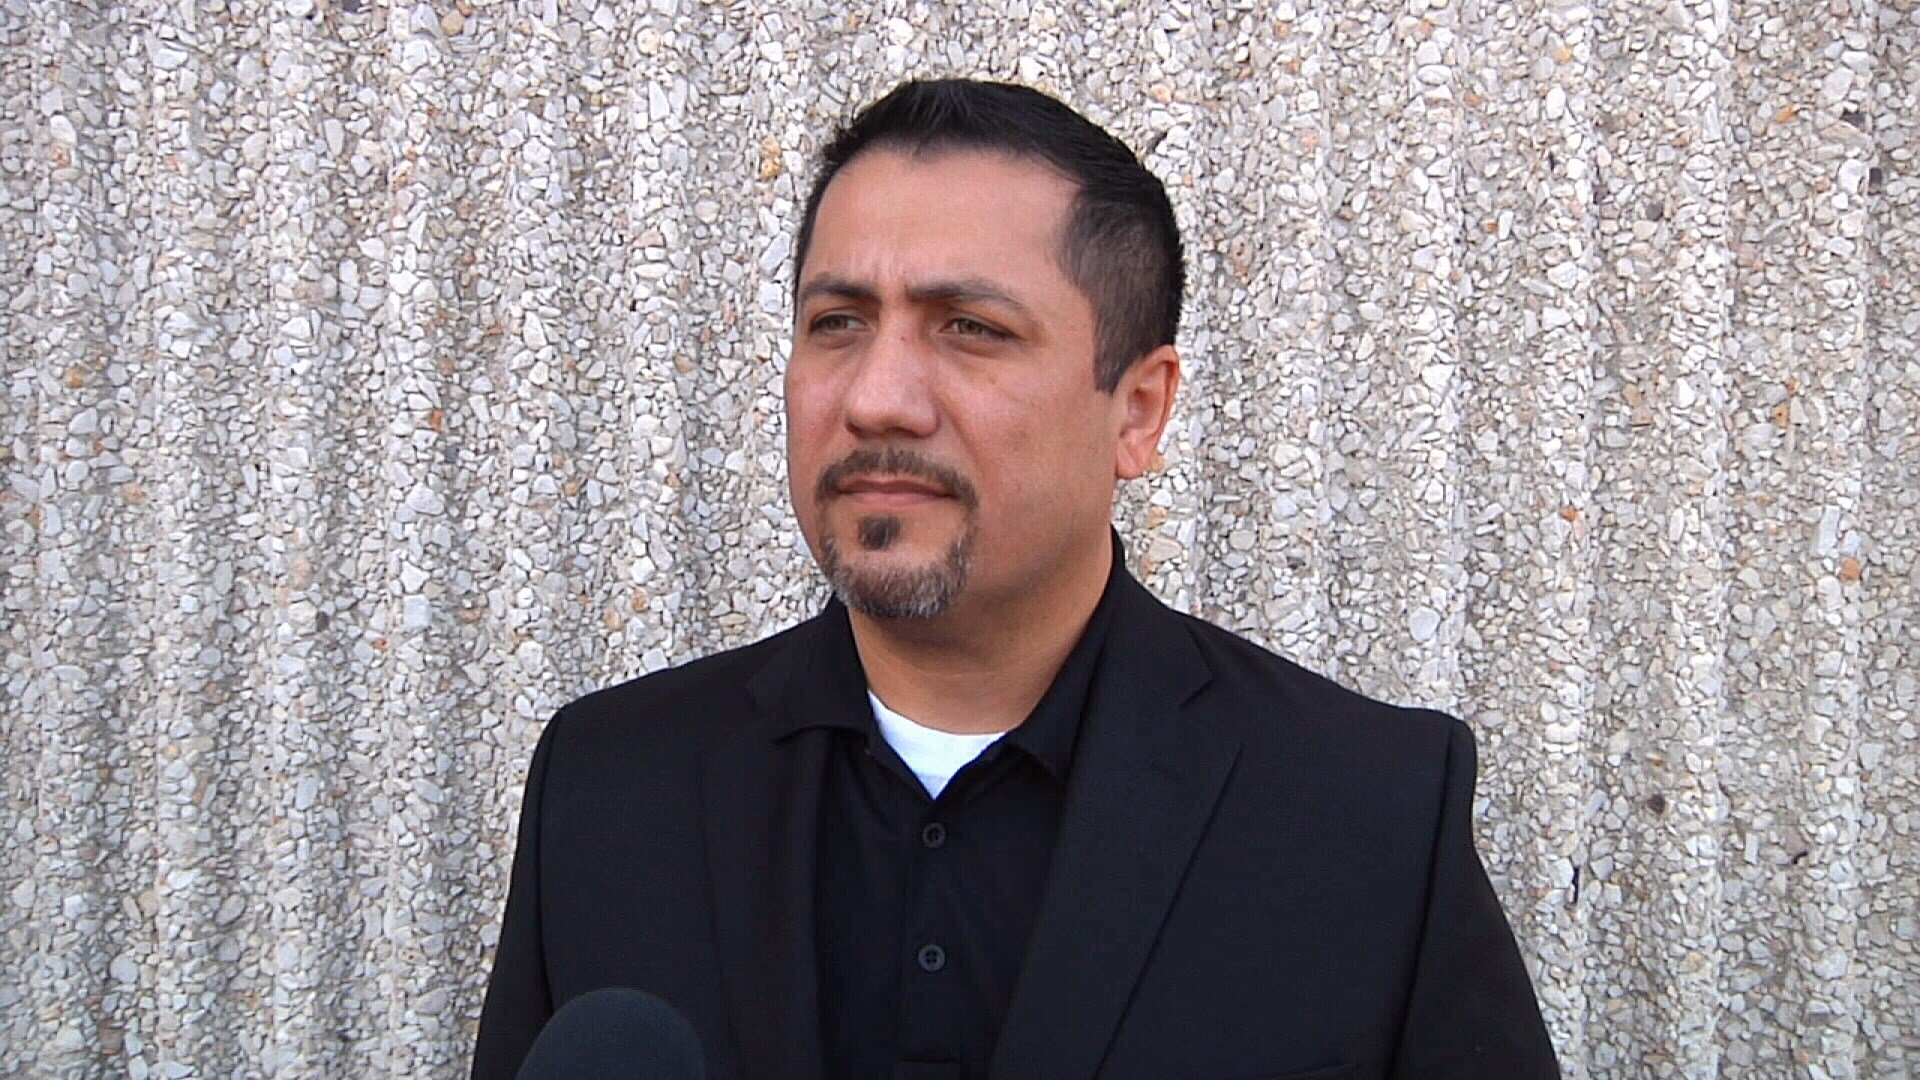 Association of Texas Professional Educators Regional Representative Roger Gutierrez says the group is concerned about the new school ratings system.